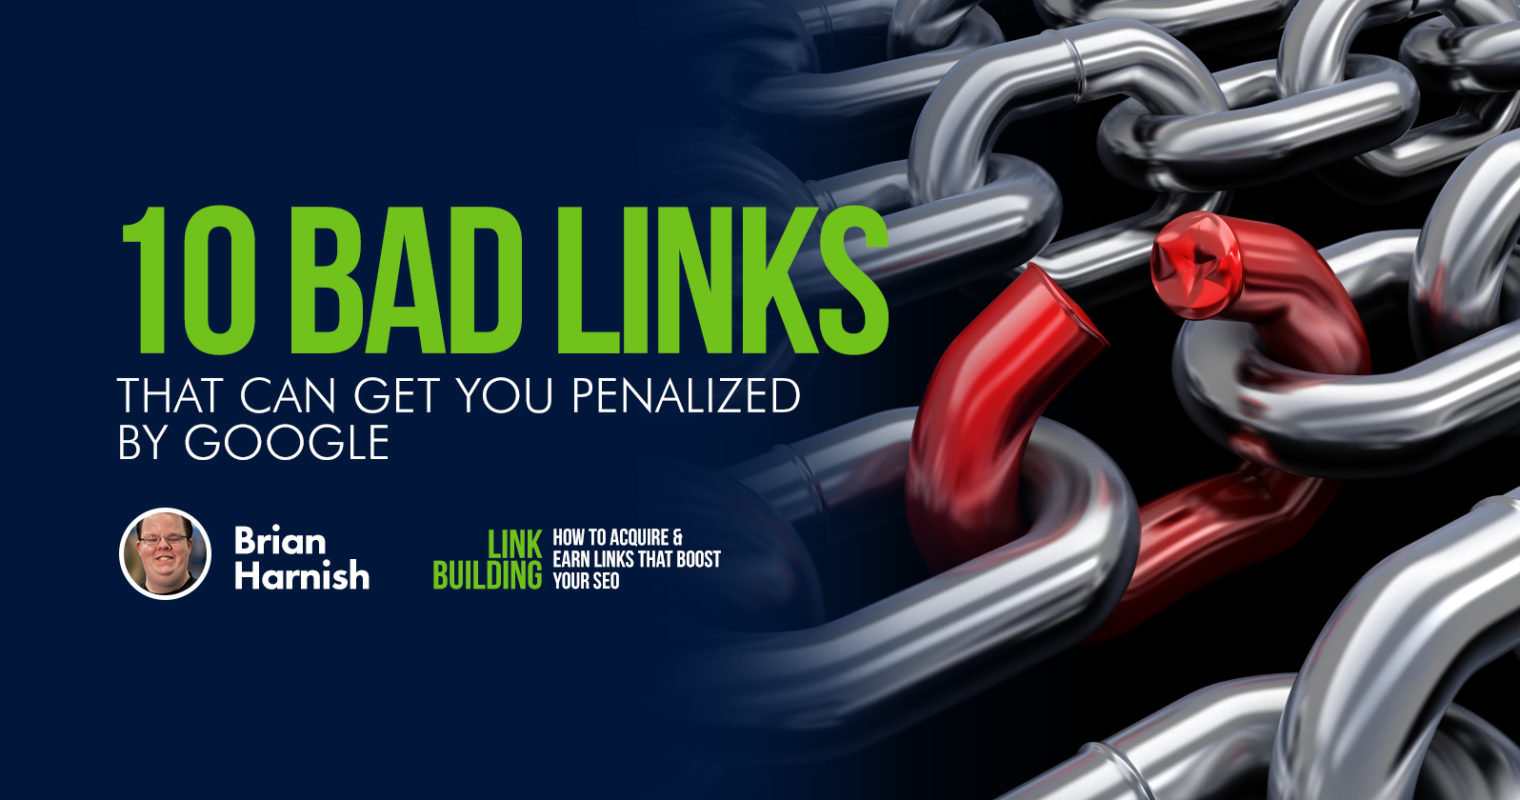 10 Bad Links That Can Get You Penalized by Google